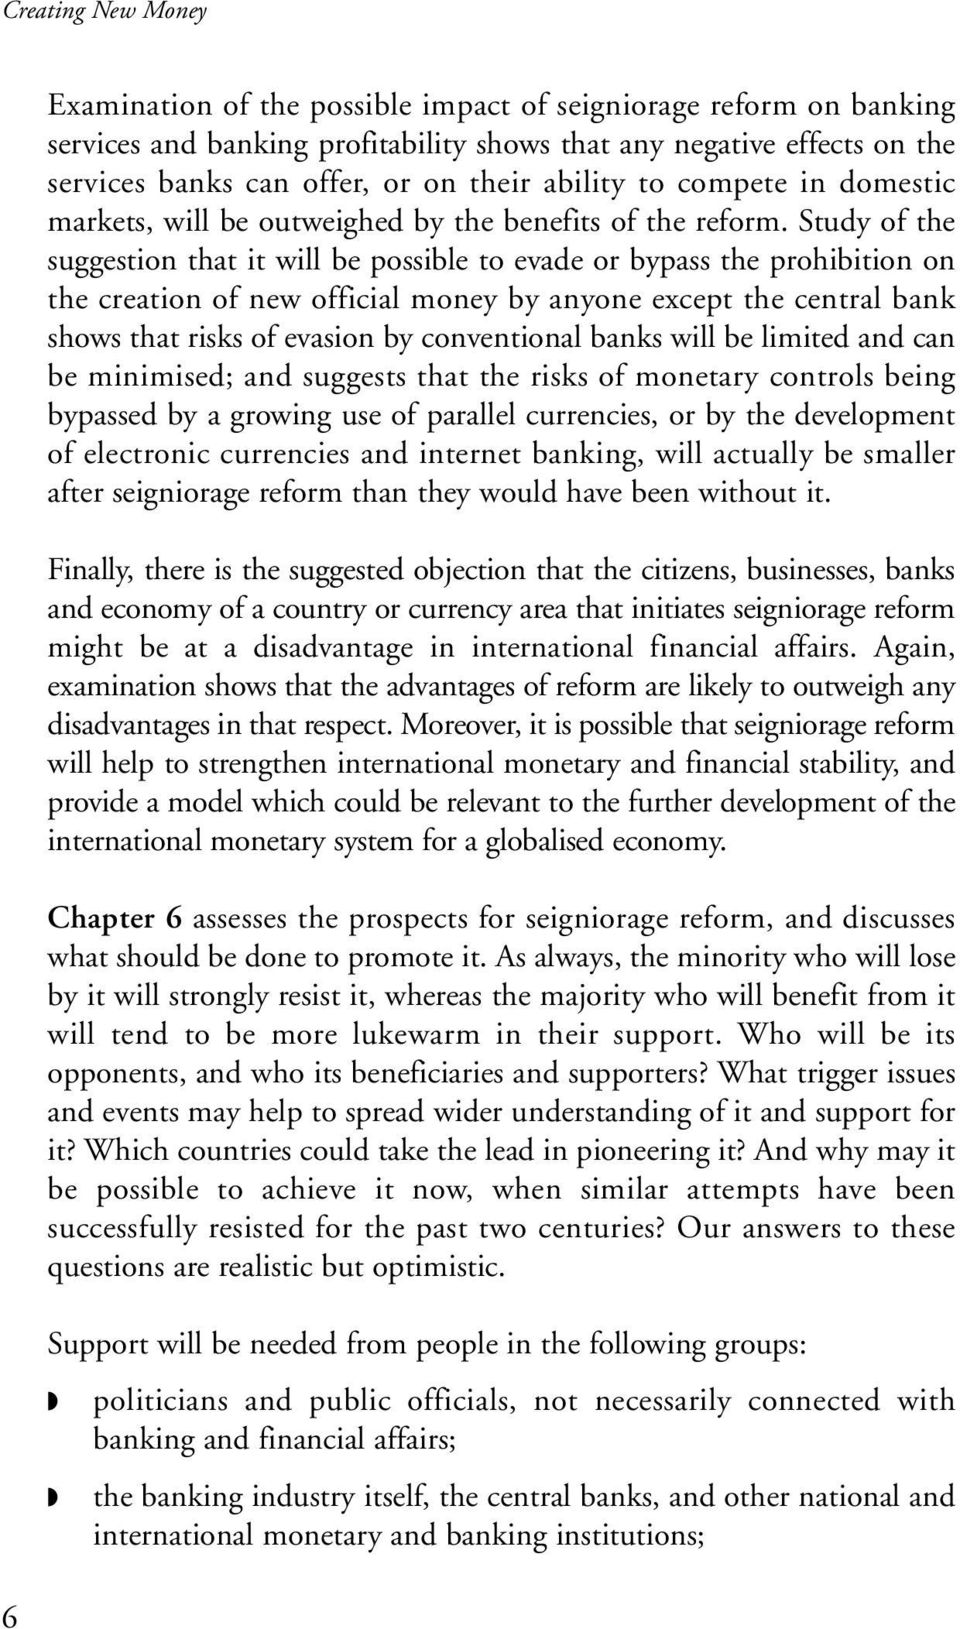 Study of the suggestion that it will be possible to evade or bypass the prohibition on the creation of new official money by anyone except the central bank shows that risks of evasion by conventional